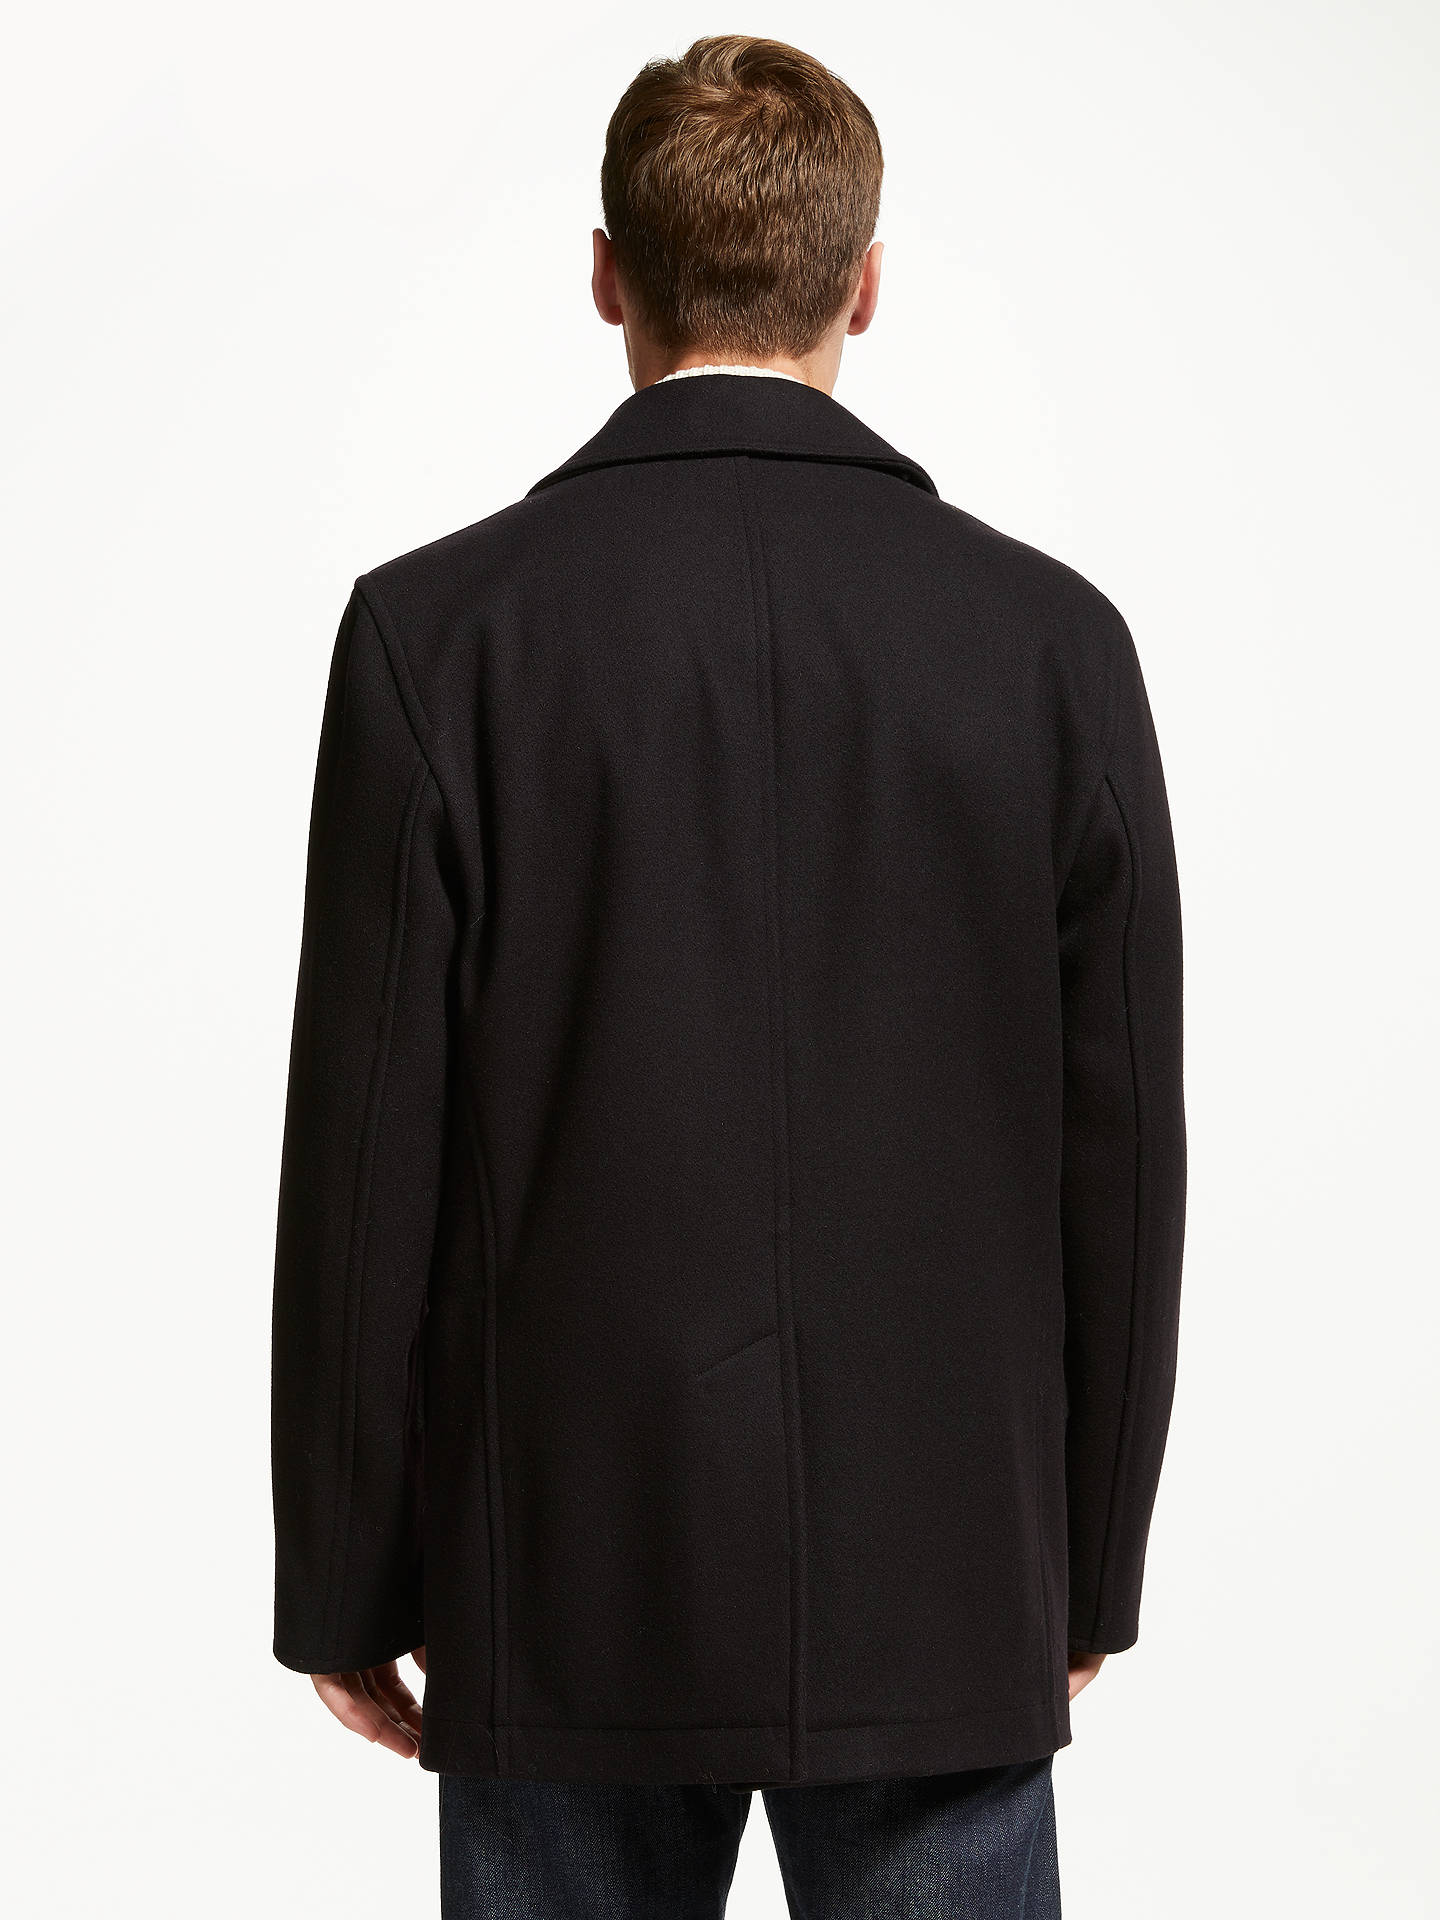 BuyGloverall for John Lewis & Partners Churchill Reefer Coat, Navy, XXL Online at johnlewis.com